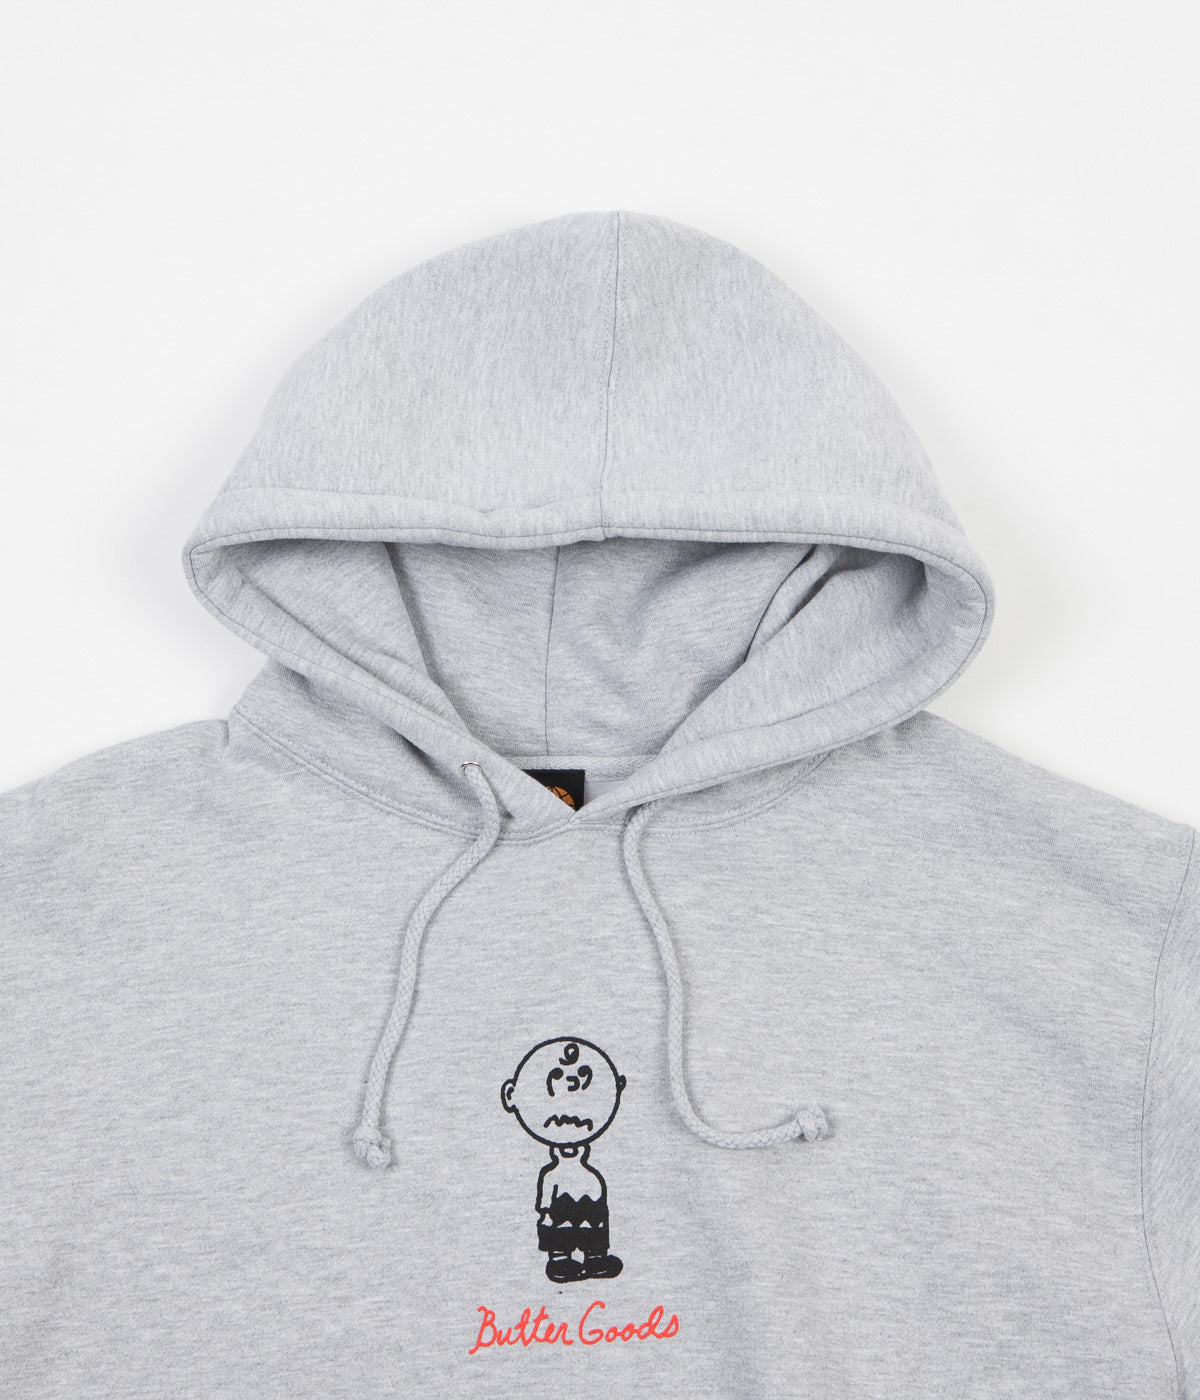 Butter Goods Trouble In Mind Hoodie - Heather Grey